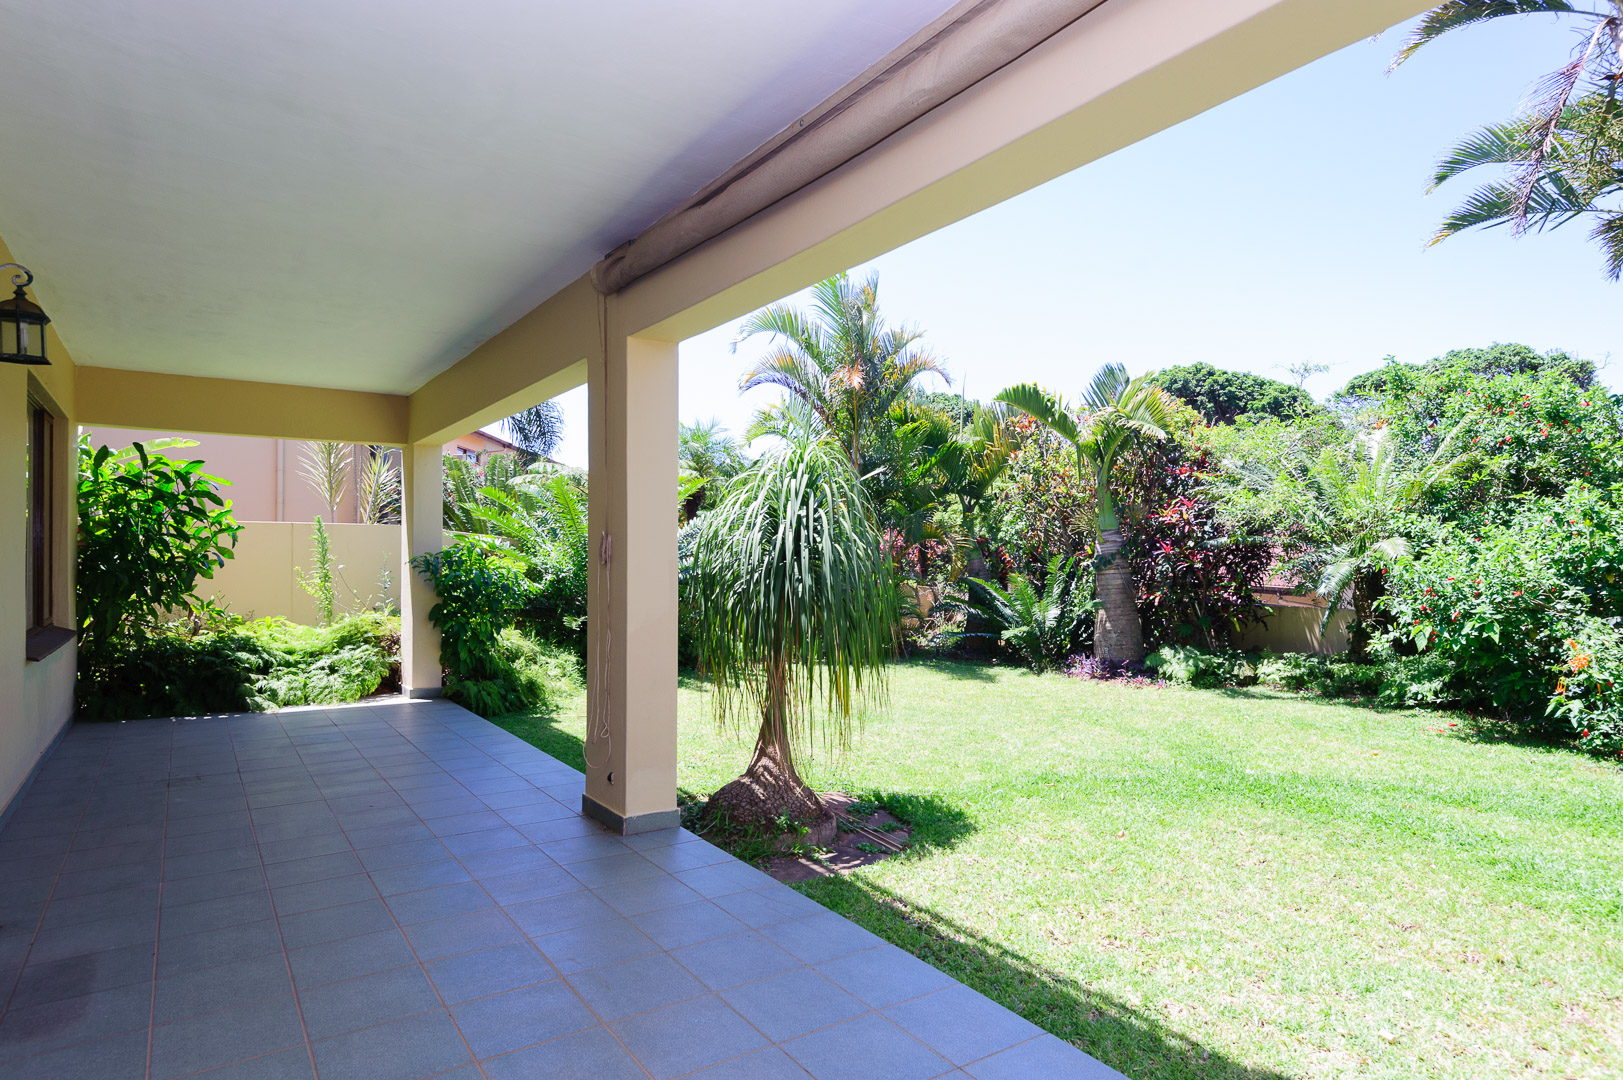 3 Bedroom Townhouse for sale in Ballito ENT0080433 : photo#10